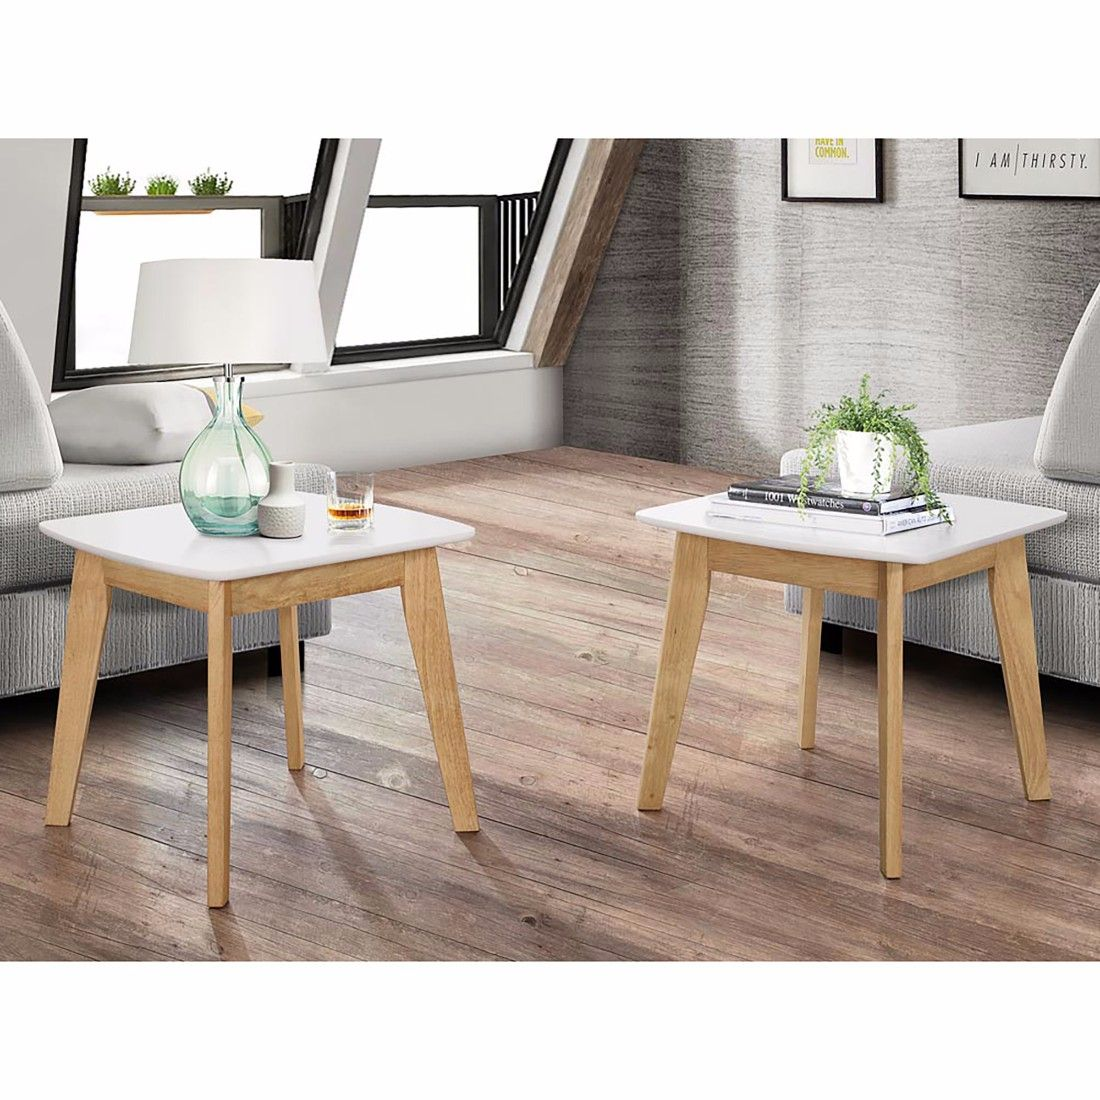 Retro Modern End Table In White Natural Set Of 2 Walker Edison C20strmwnl Mid Century Modern Side Table Modern End Tables Saracina Home [ 1100 x 1100 Pixel ]